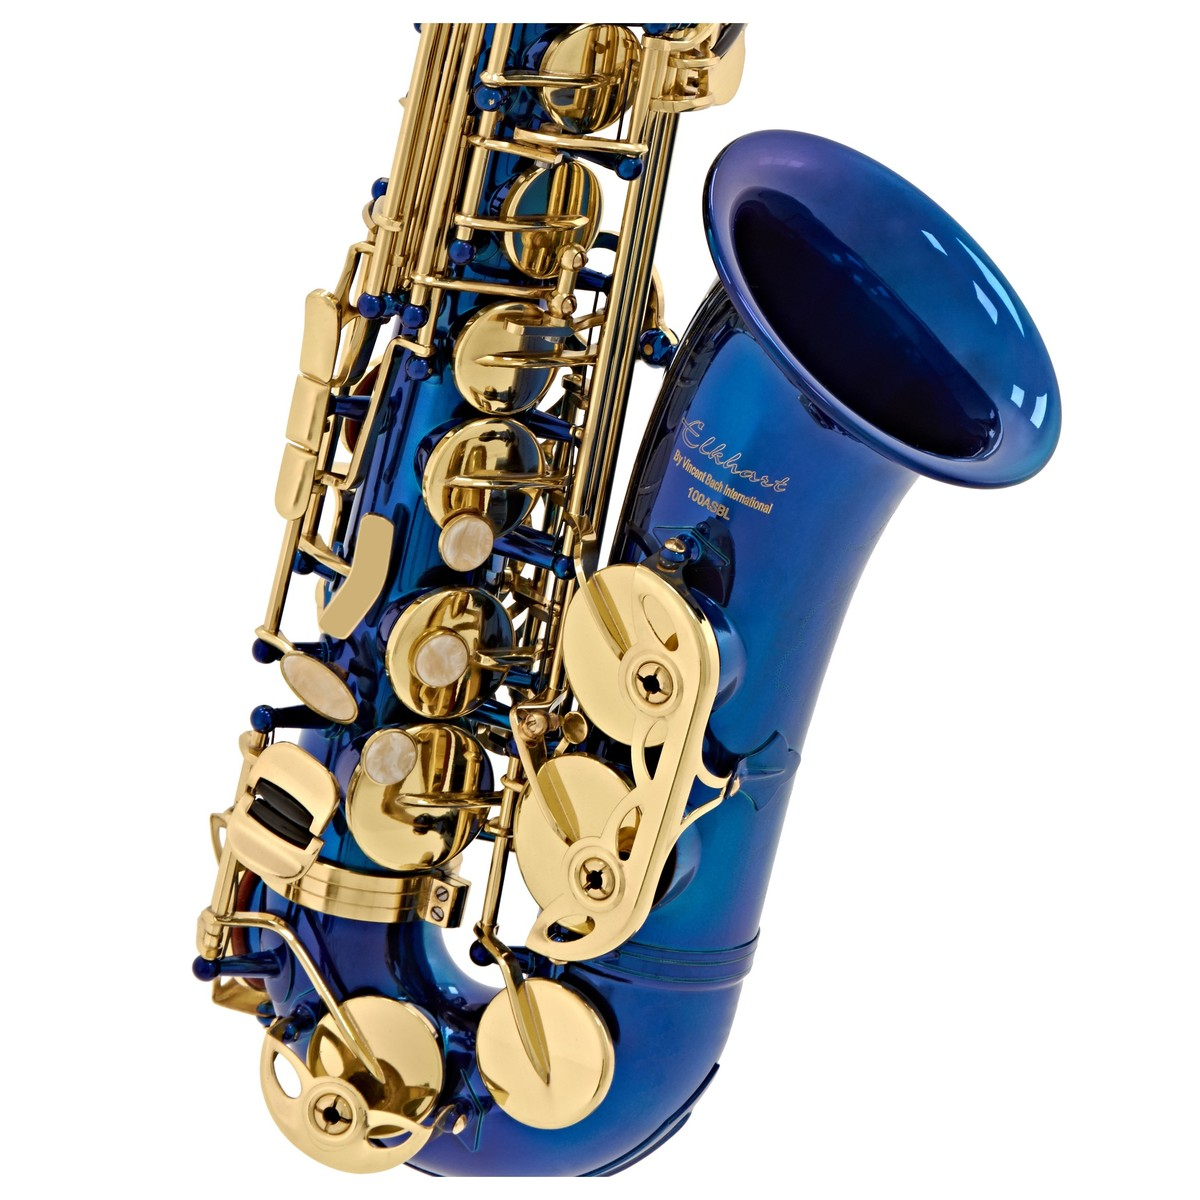 essay in blue for alto saxophone The saxophone is a family of woodwind instruments saxophones are usually  made of brass  most commonly, however, the alto and tenor saxophones  incorporate a detachable, curved neck above the  vom tage (1929) – paul  hindemith háry jános (1926) – zoltán kodály rhapsody in blue – george  gershwin.